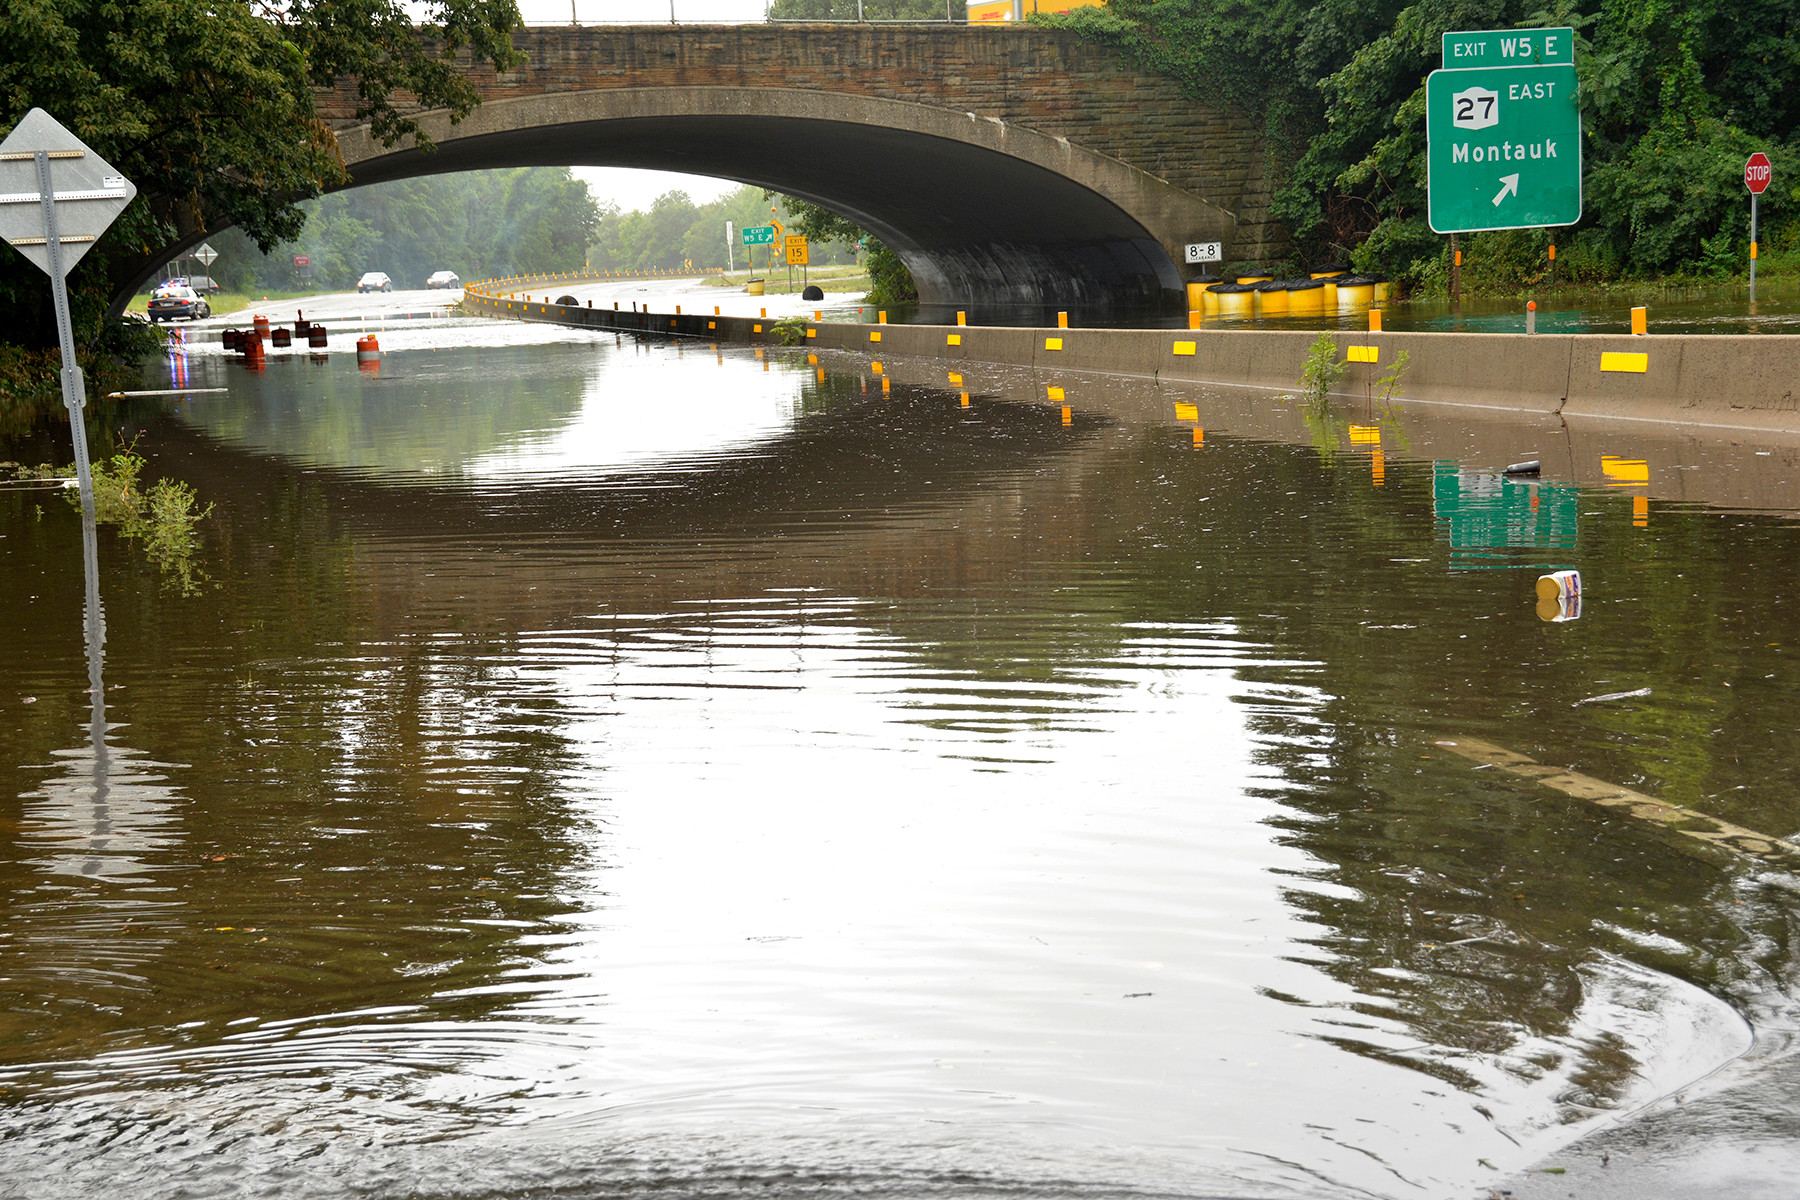 The Wantagh Parkway near Sunrise Highway was impassable.